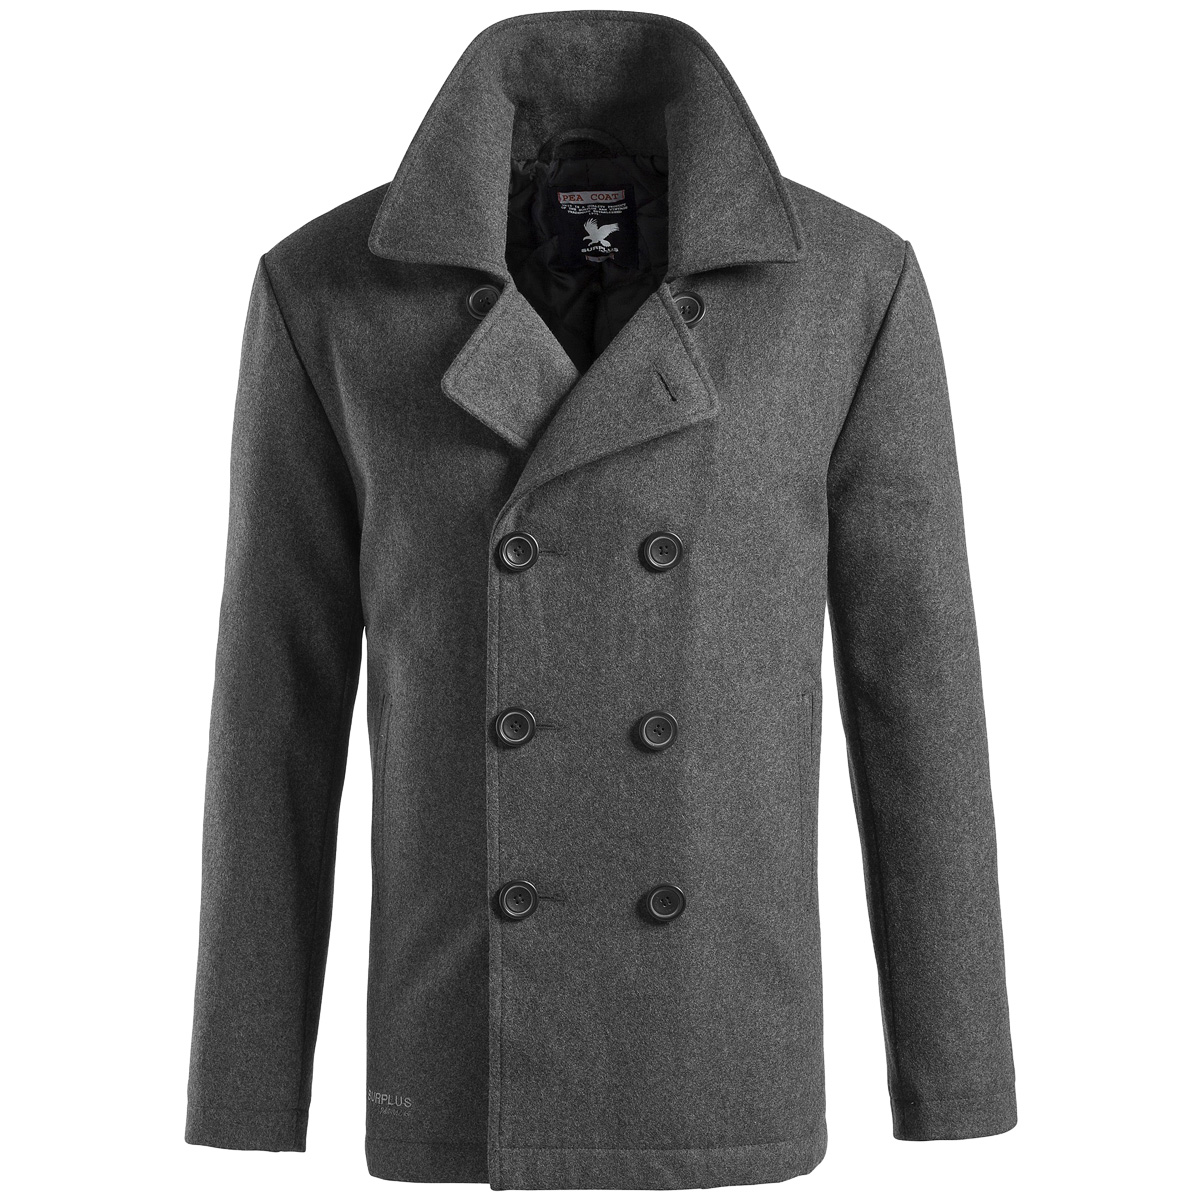 Dating navy pea coats